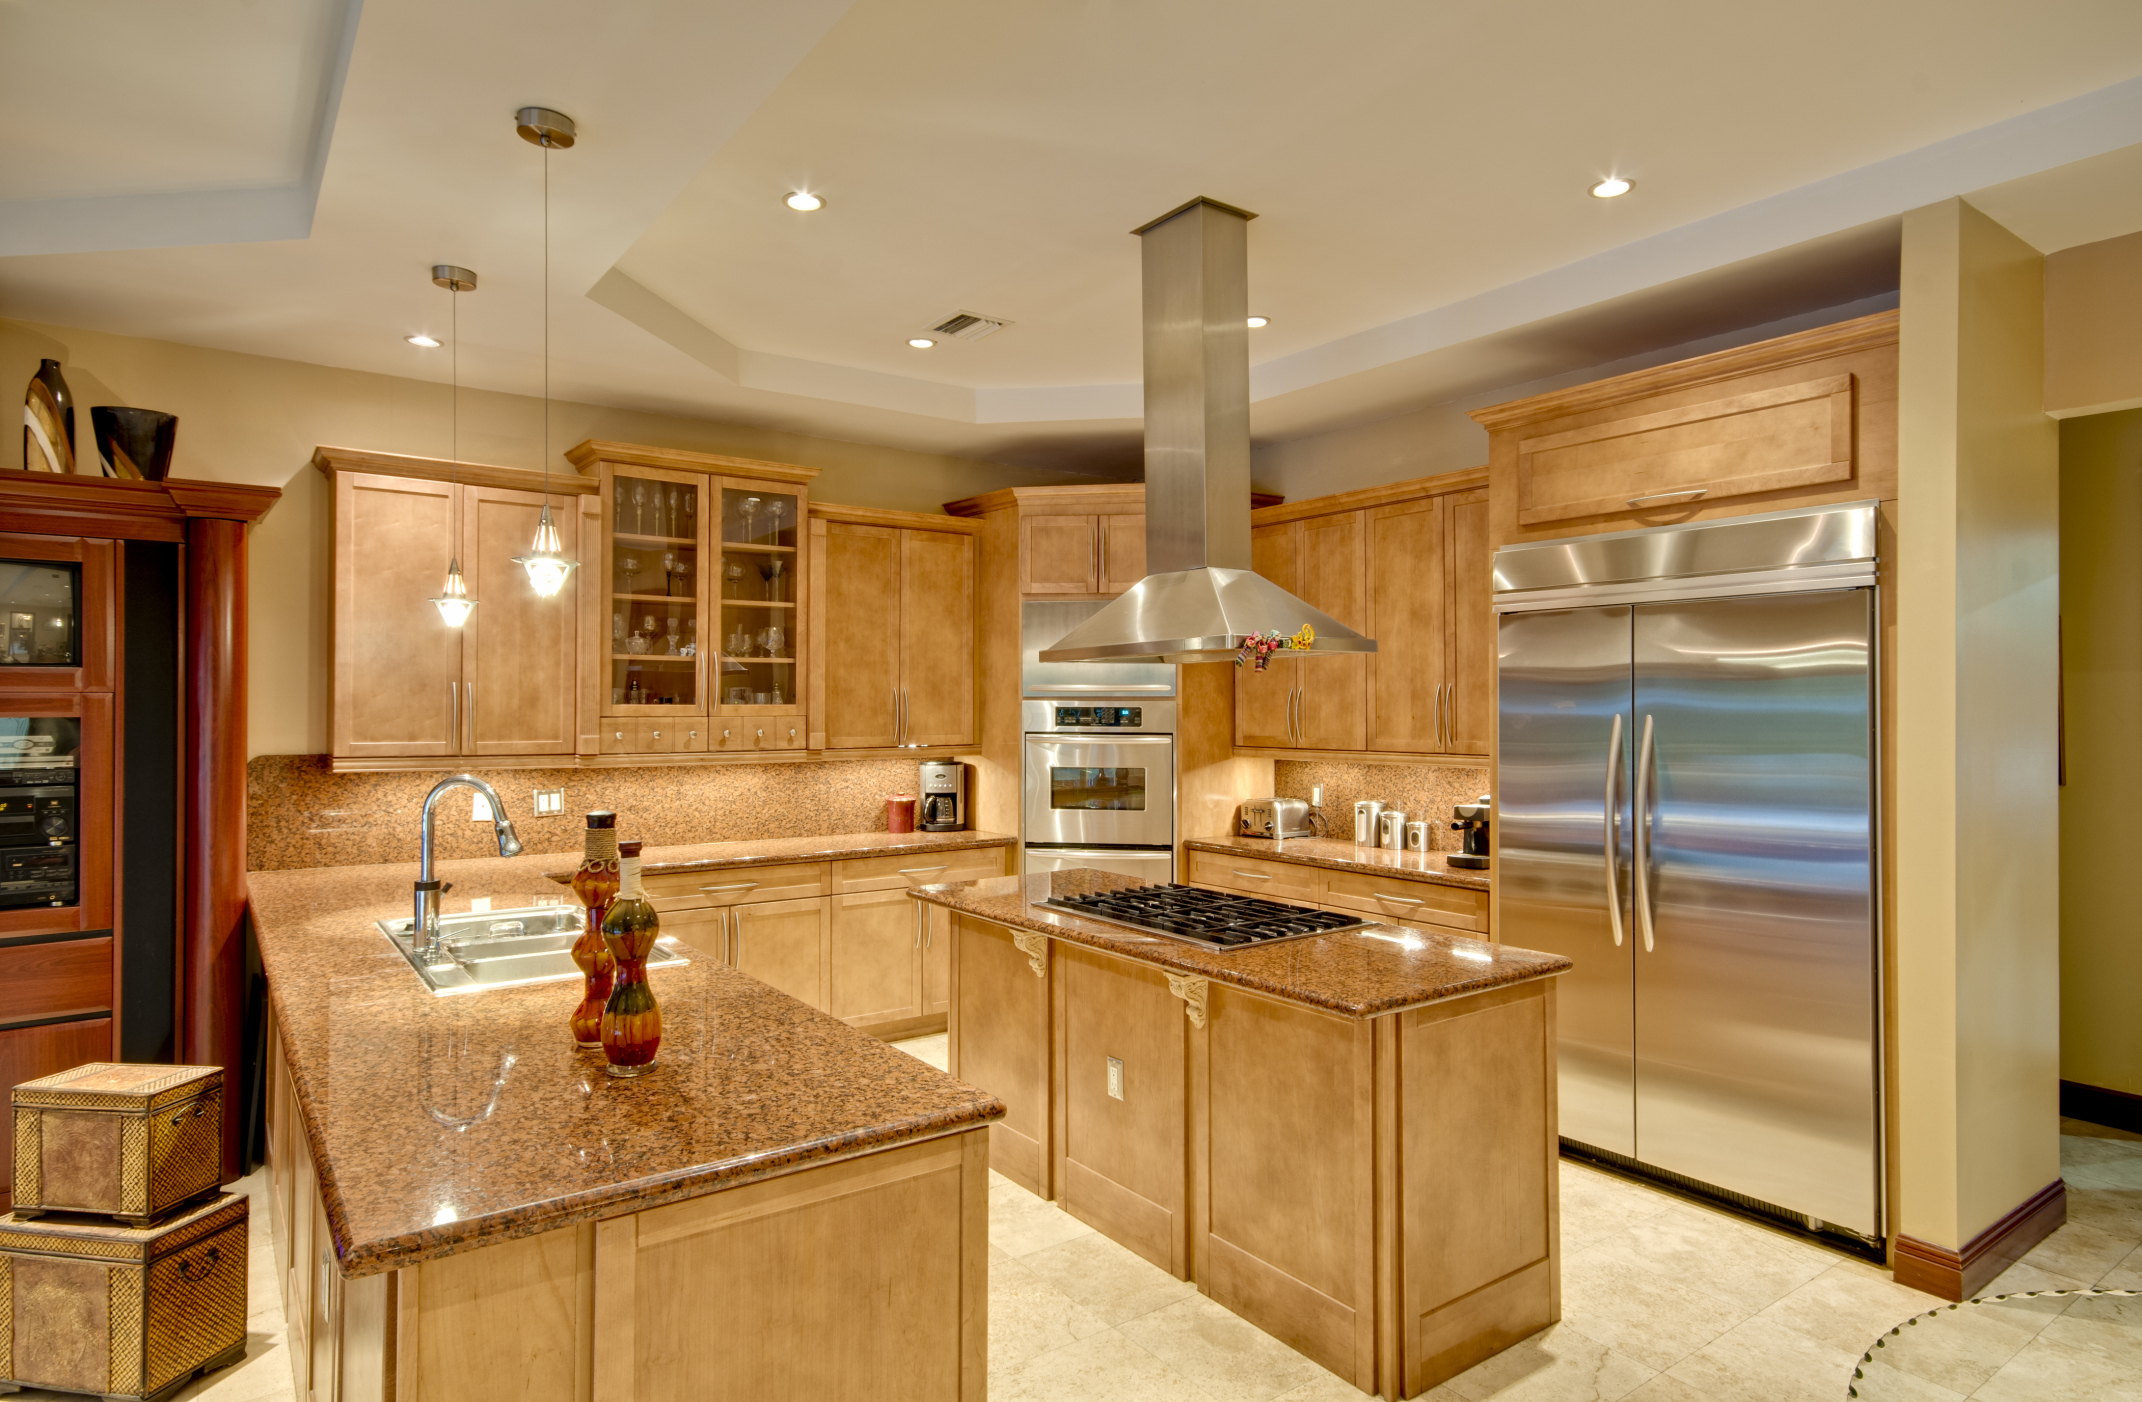 Decorating Ideas For A Kitchen With Blonde Cabinets